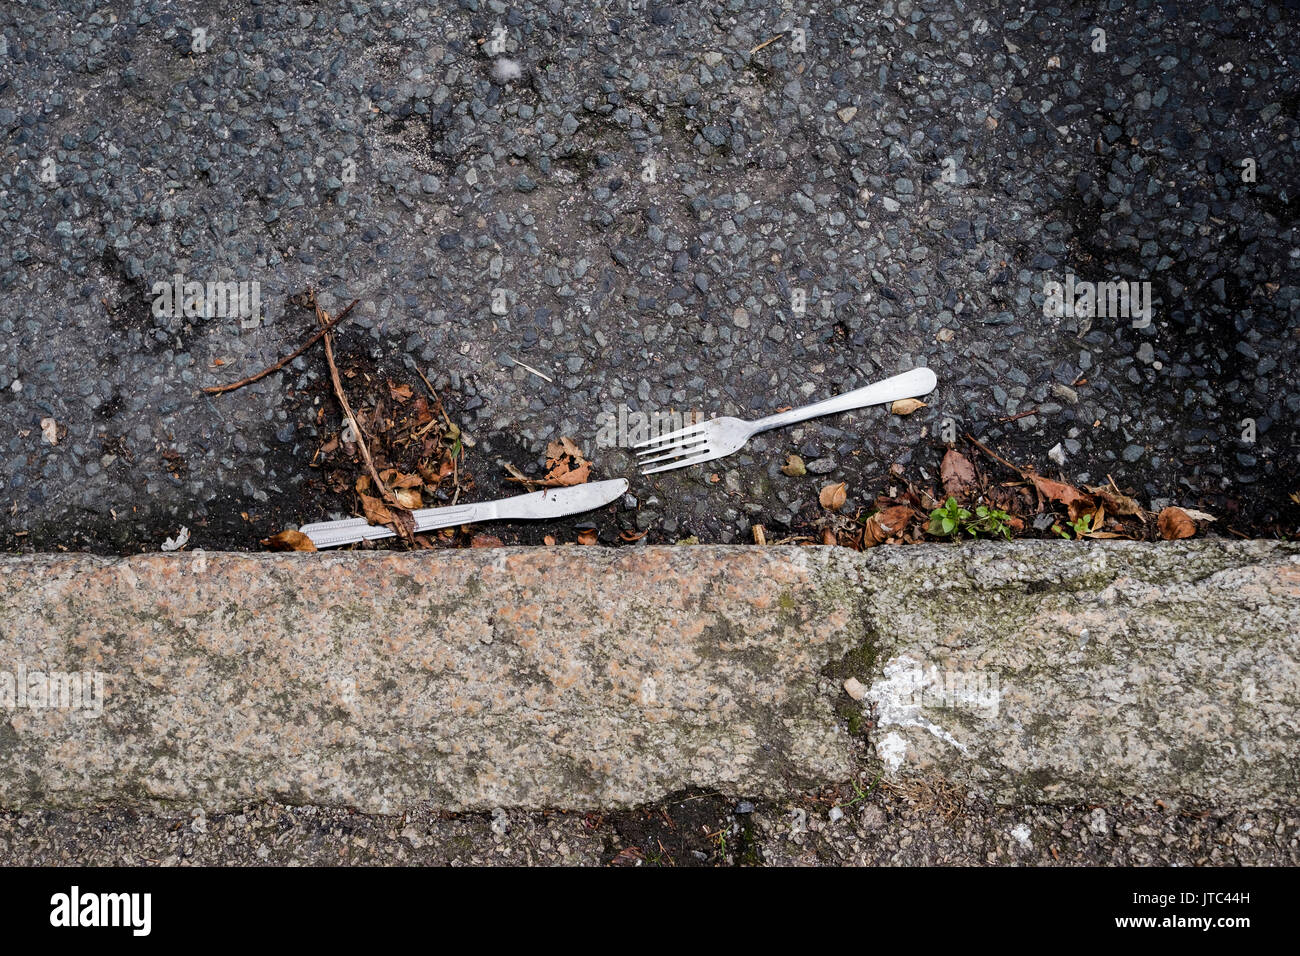 Knife and fork discarded in the road next to a kerb Stock Photo